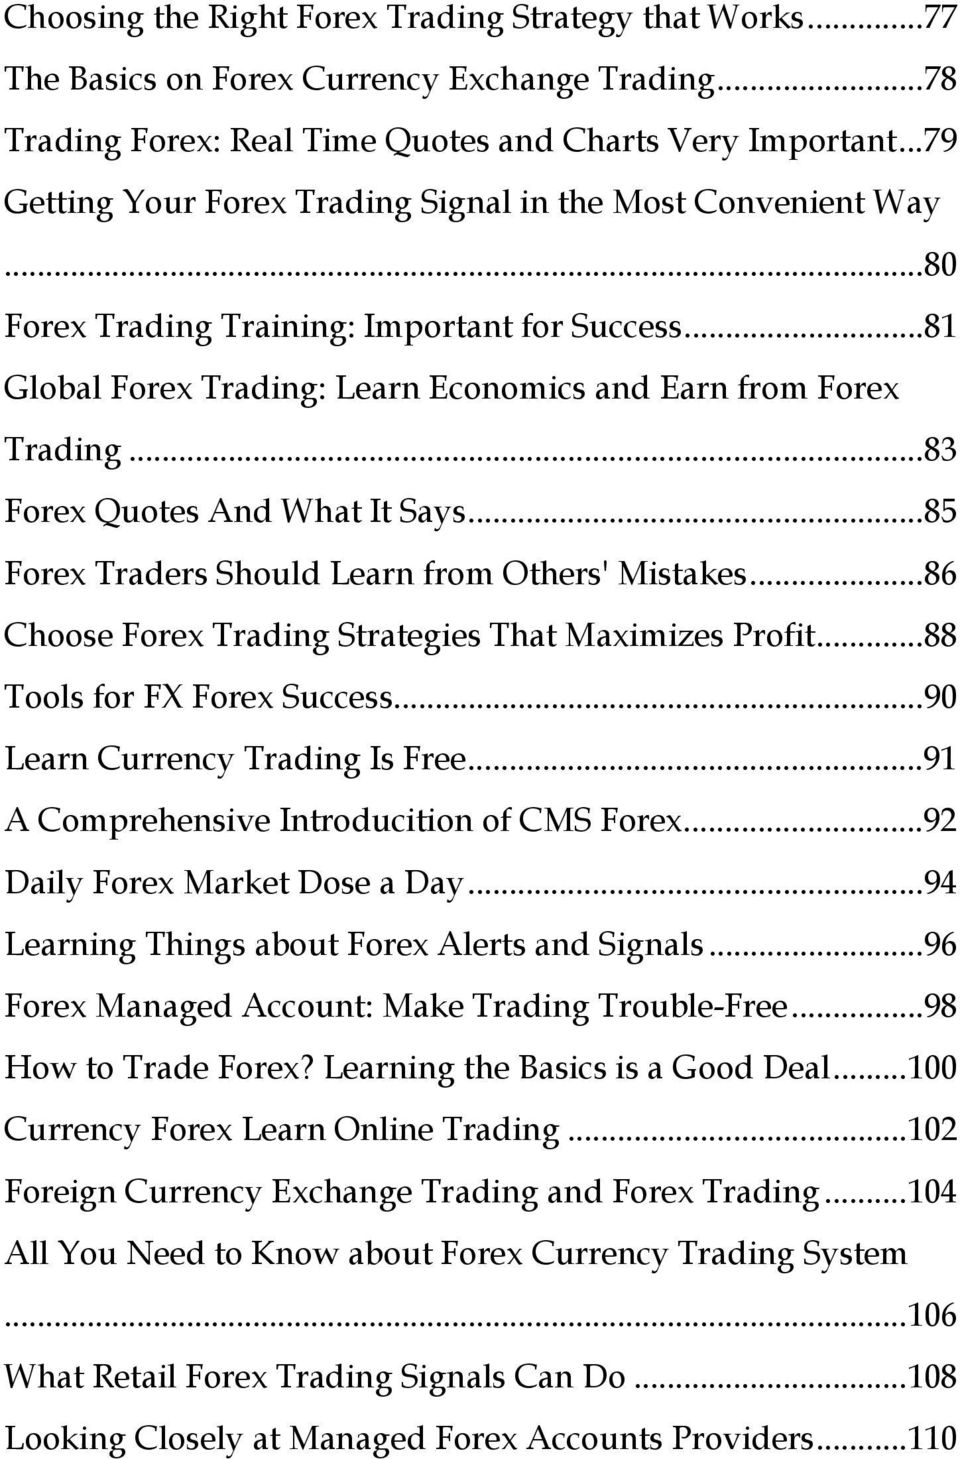 ..83 Forex Quotes And What It Says...85 Forex Traders Should Learn from Others' Mistakes...86 Choose Forex Trading Strategies That Maximizes Profit...88 Tools for FX Forex Success.